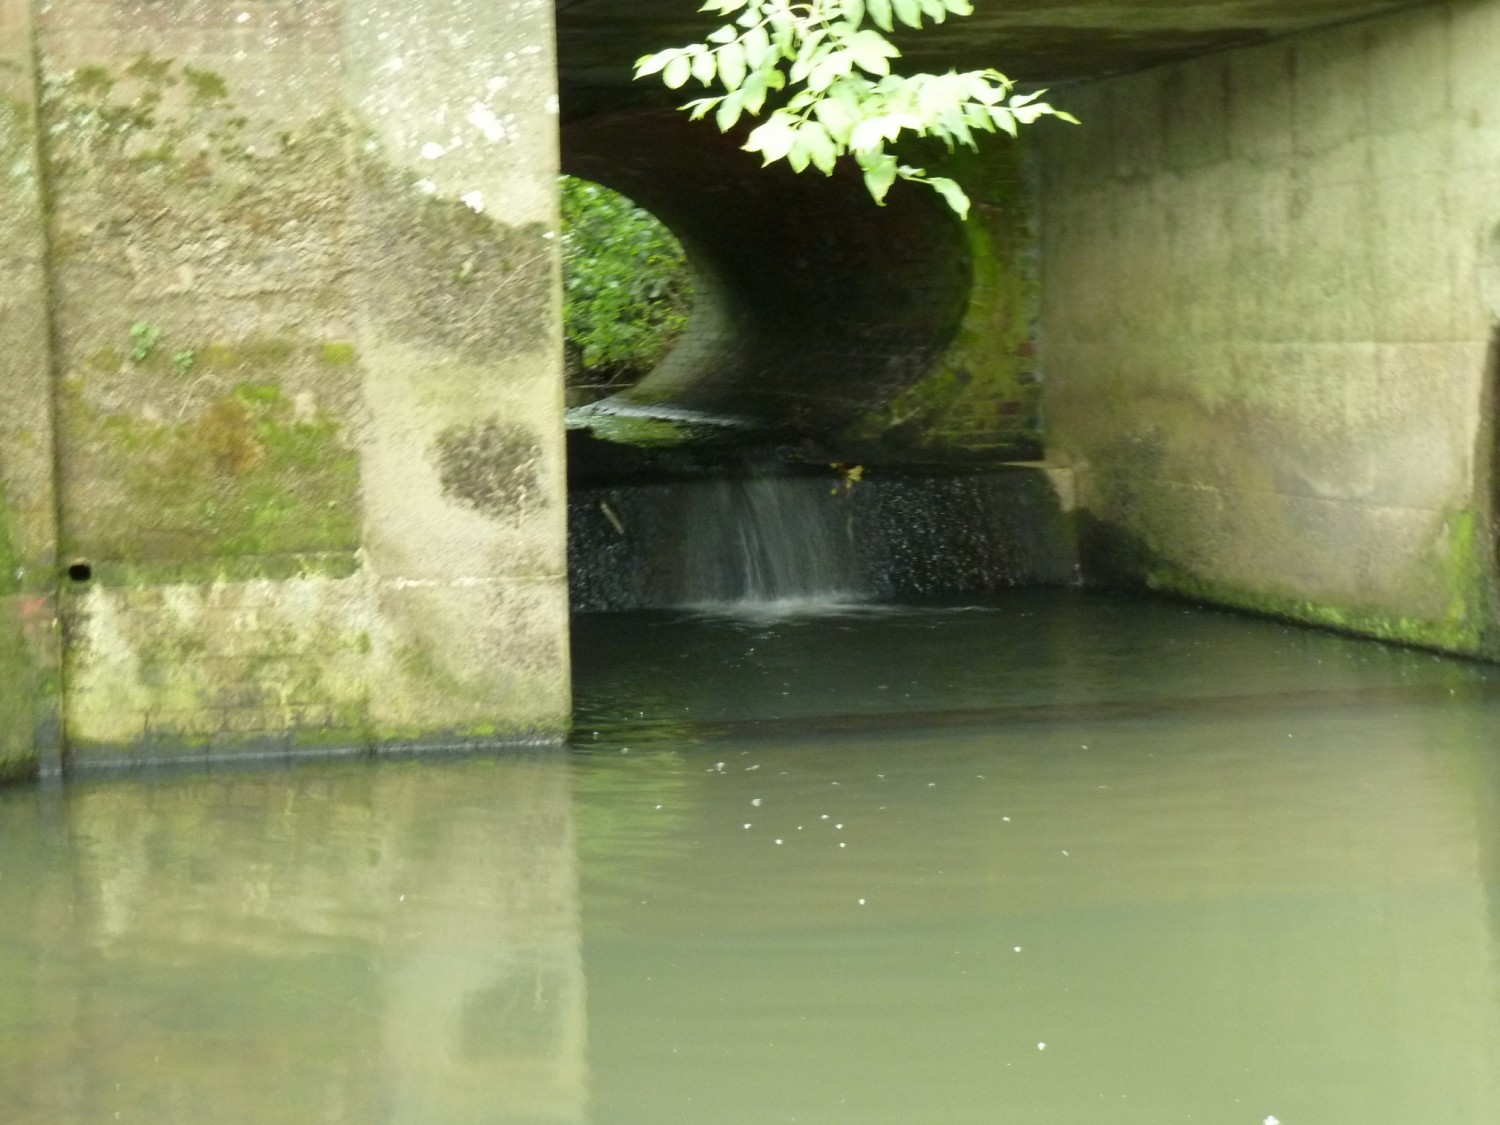 Bridge Culvert on the Longford Stream